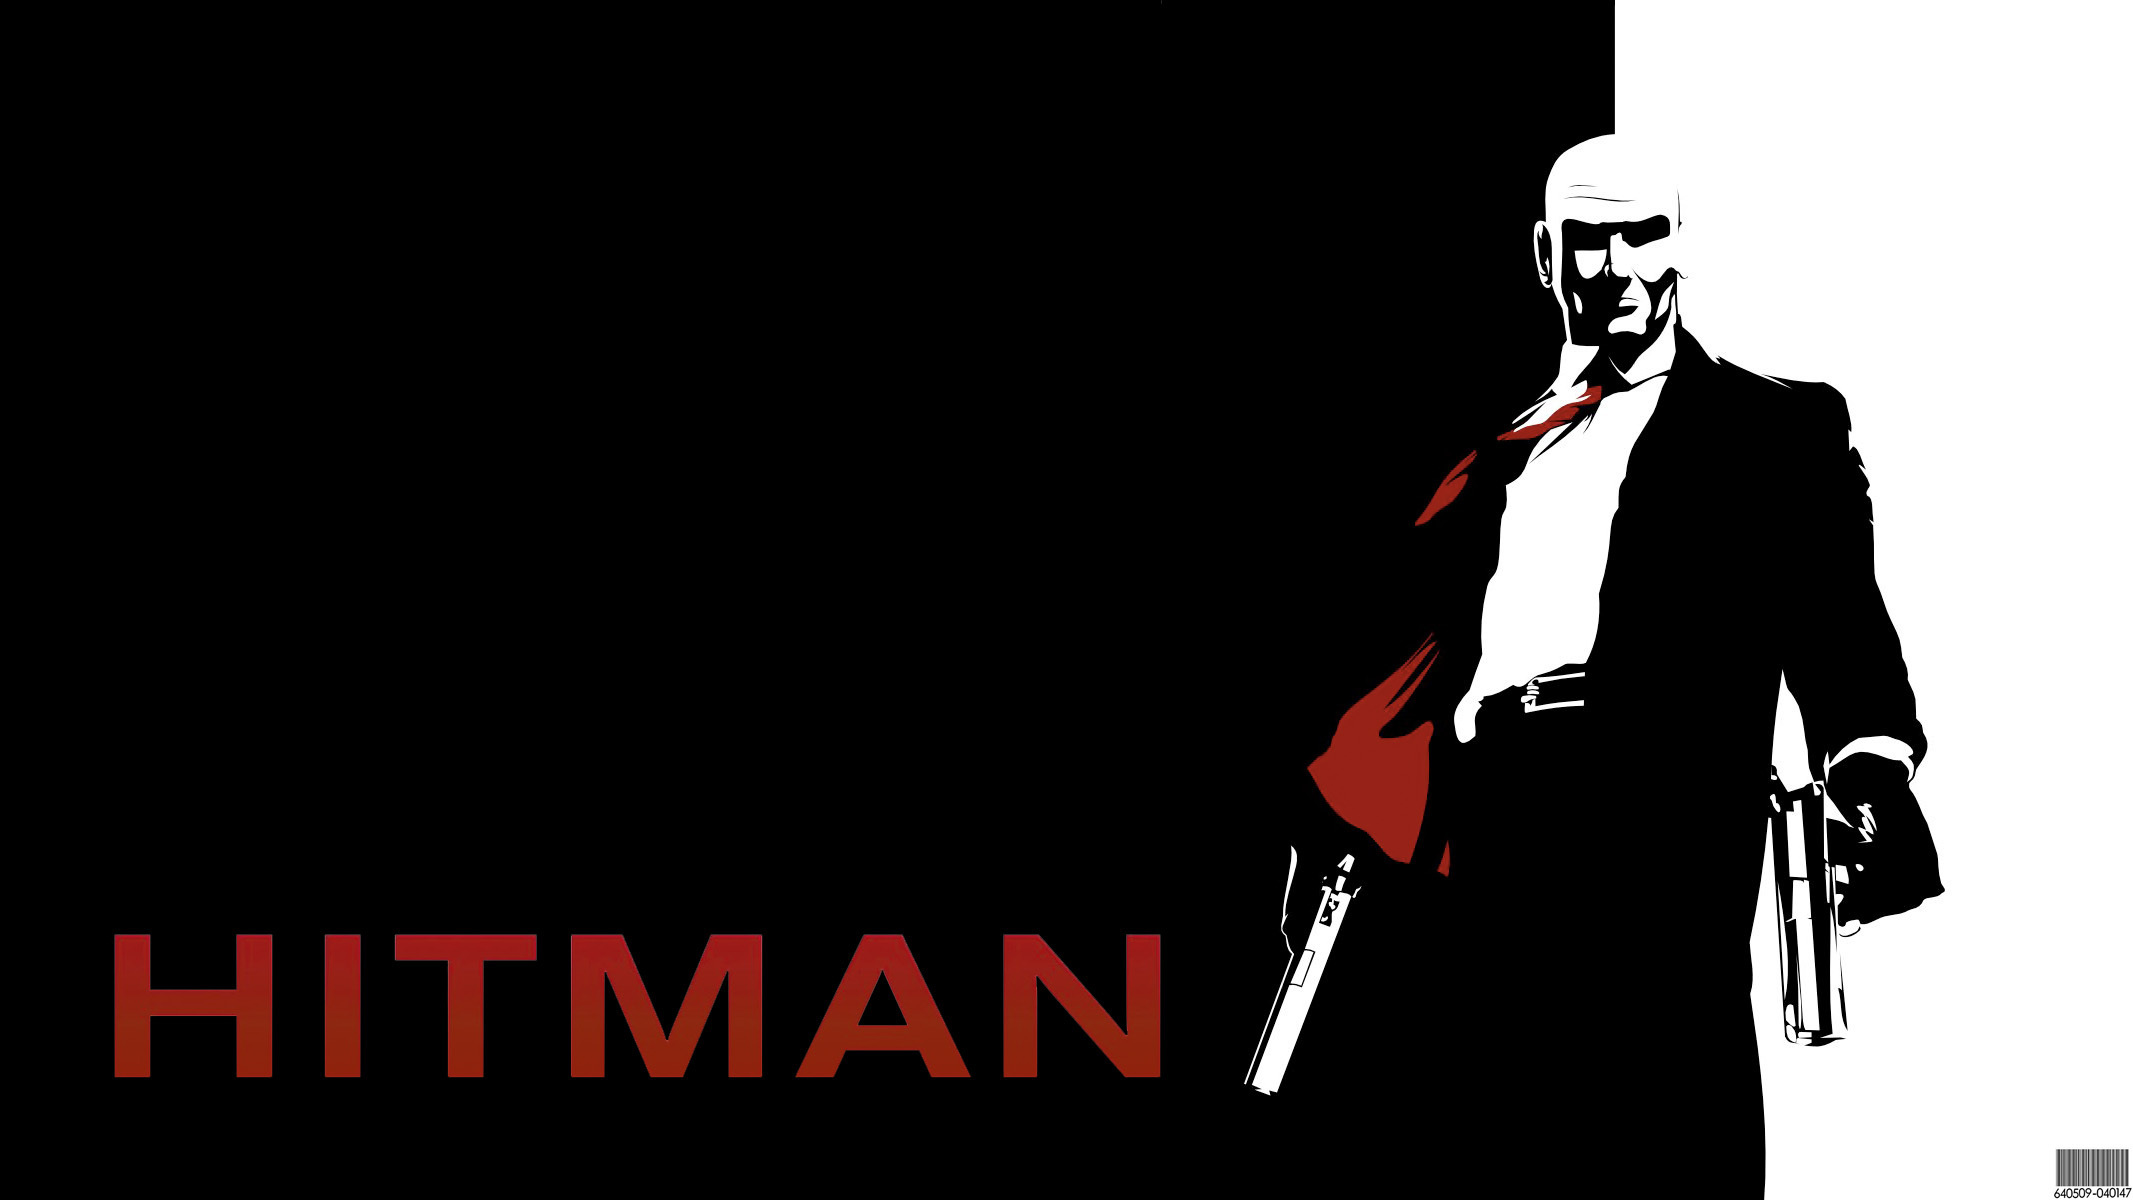 hitman 2 wallpaper download